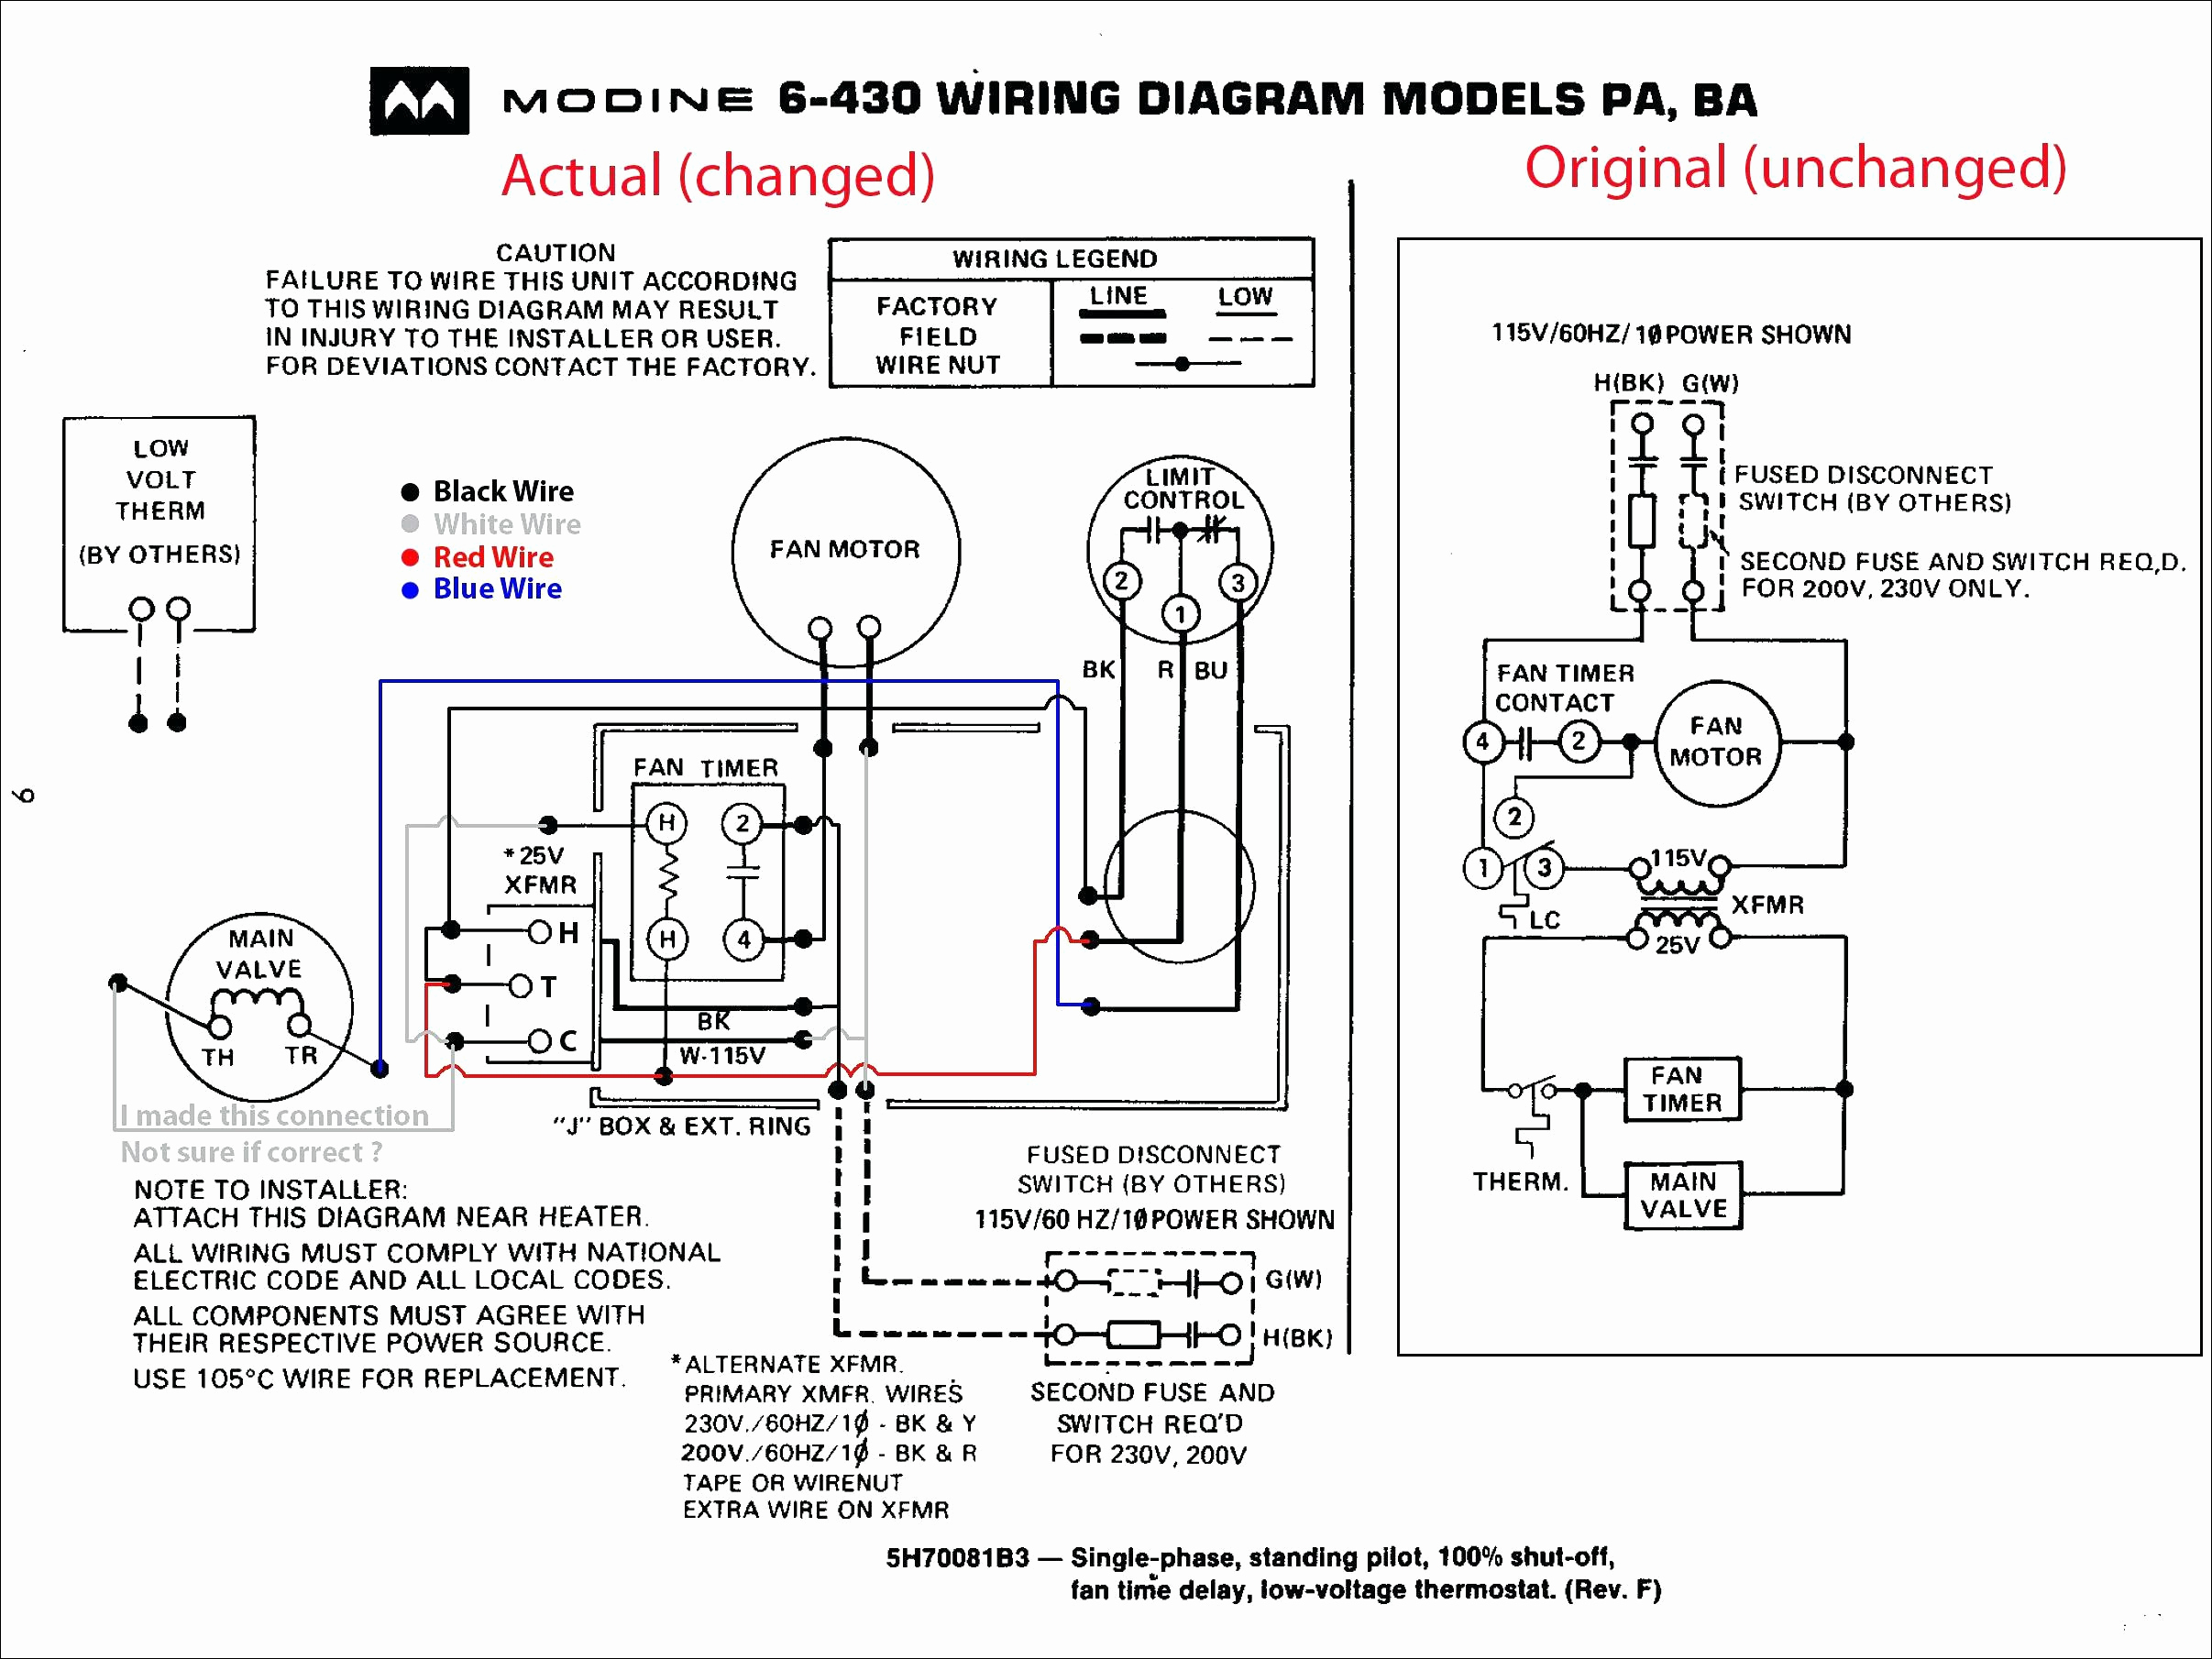 modine heater wiring diagram Collection-Modine Heater Parts Diagram for Amazing Trane Gas Furnace Wiring Diagram Image Electrical Diagram 1-a